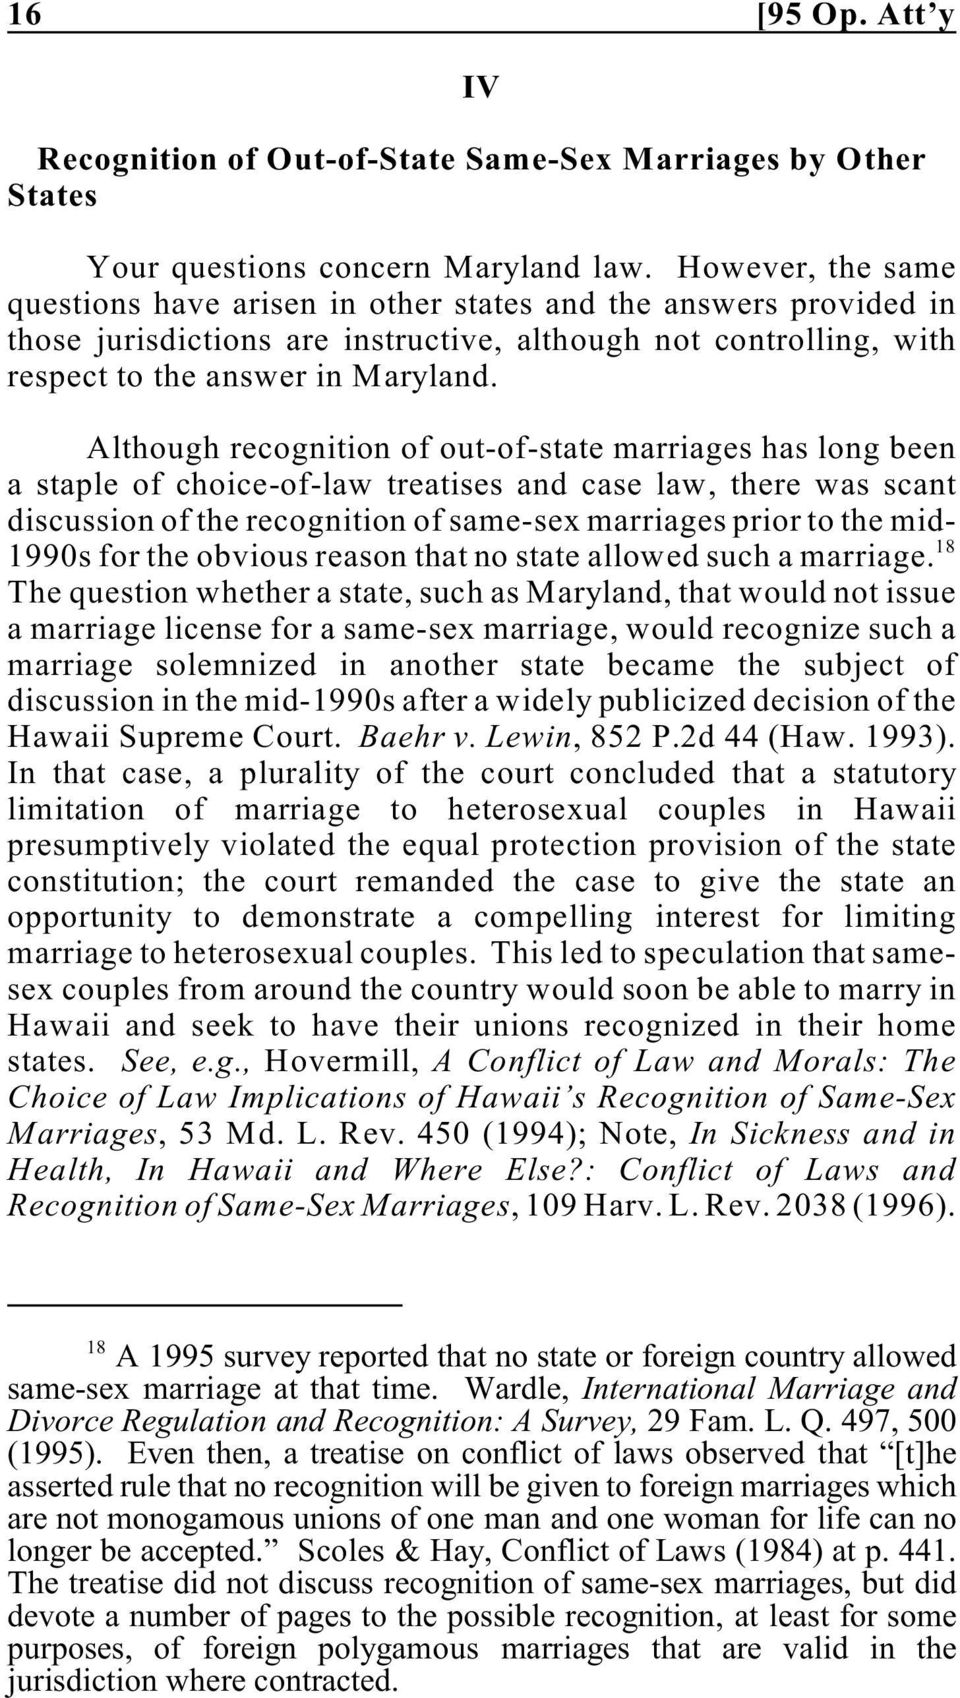 Although recognition of out-of-state marriages has long been a staple of choice-of-law treatises and case law, there was scant discussion of the recognition of same-sex marriages prior to the mid-